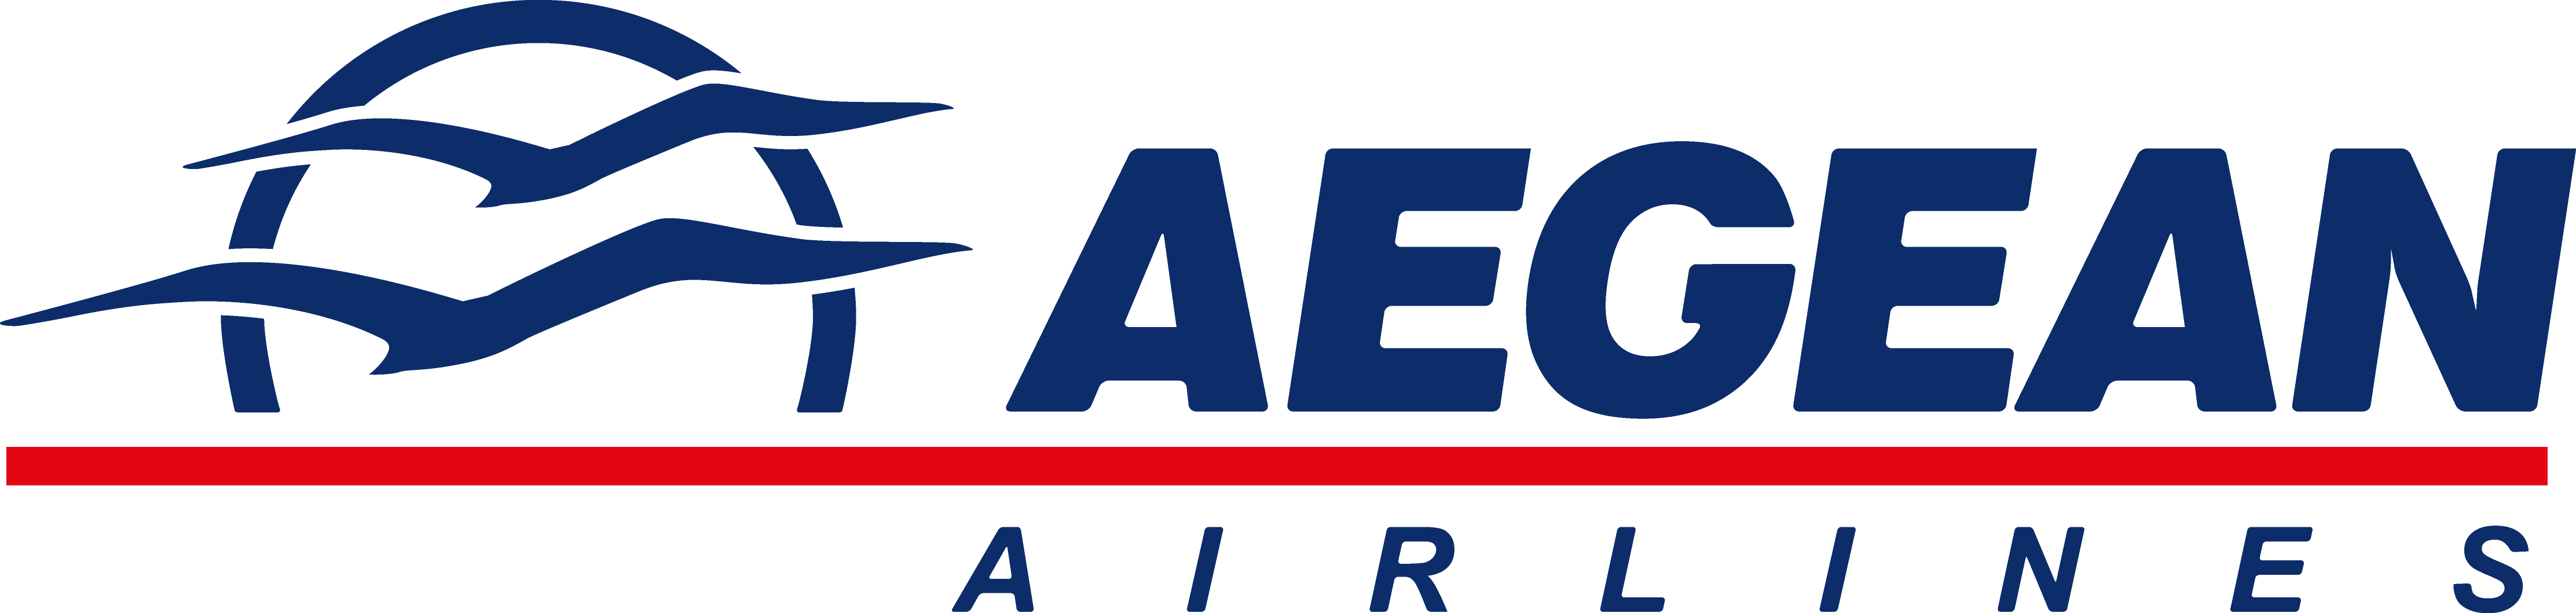 Aegean airlines logo clipart graphic free Aegean Airlines | Aegean Airlines | Airline logo, Vacation planner ... graphic free